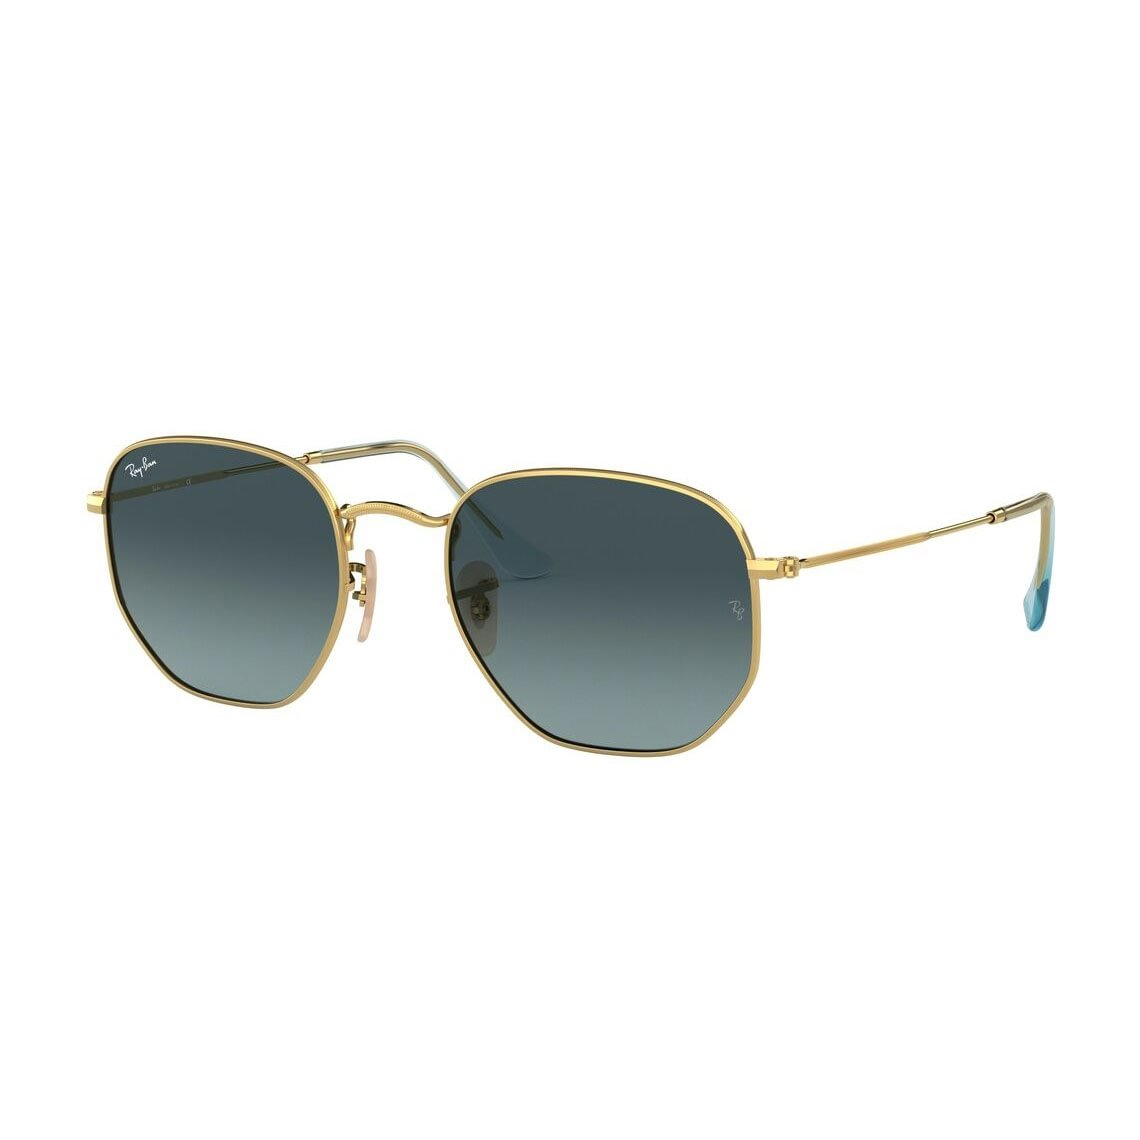 Ray-Ban Hexagonal Flat Lenses RB3548N 91233M 5121